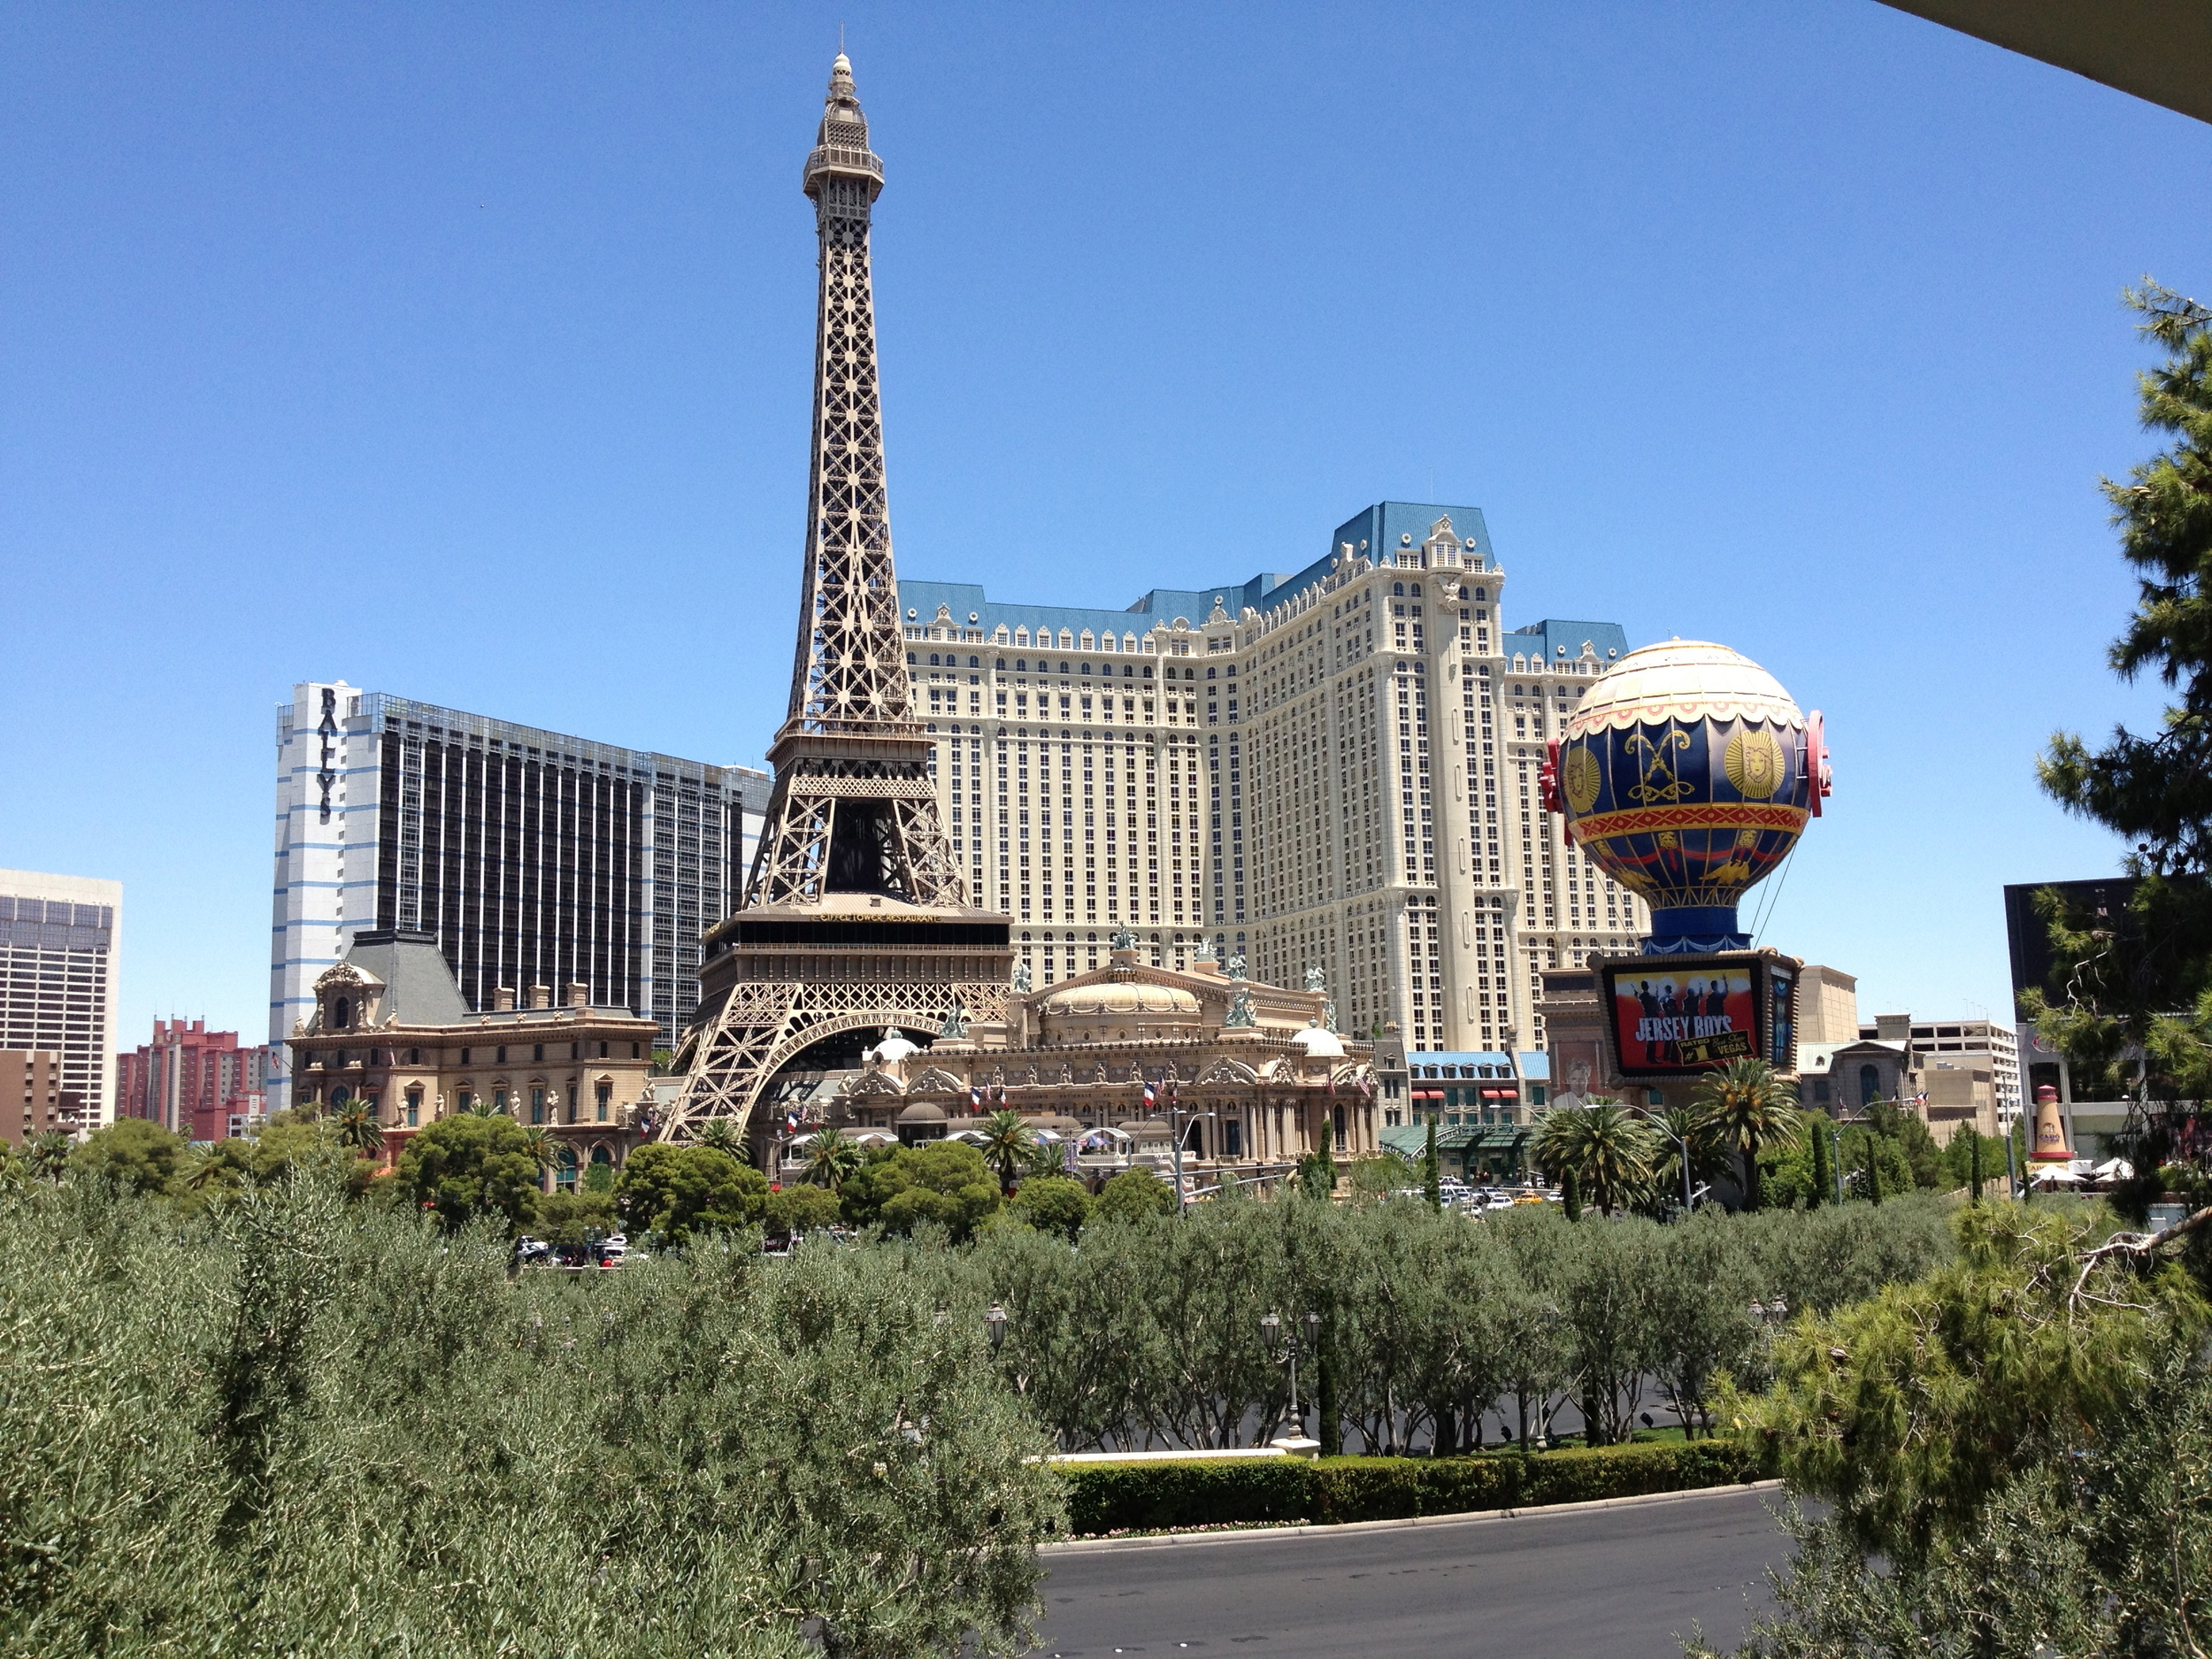 You don't actually need to see the rest of the world; it's all here in Vegas